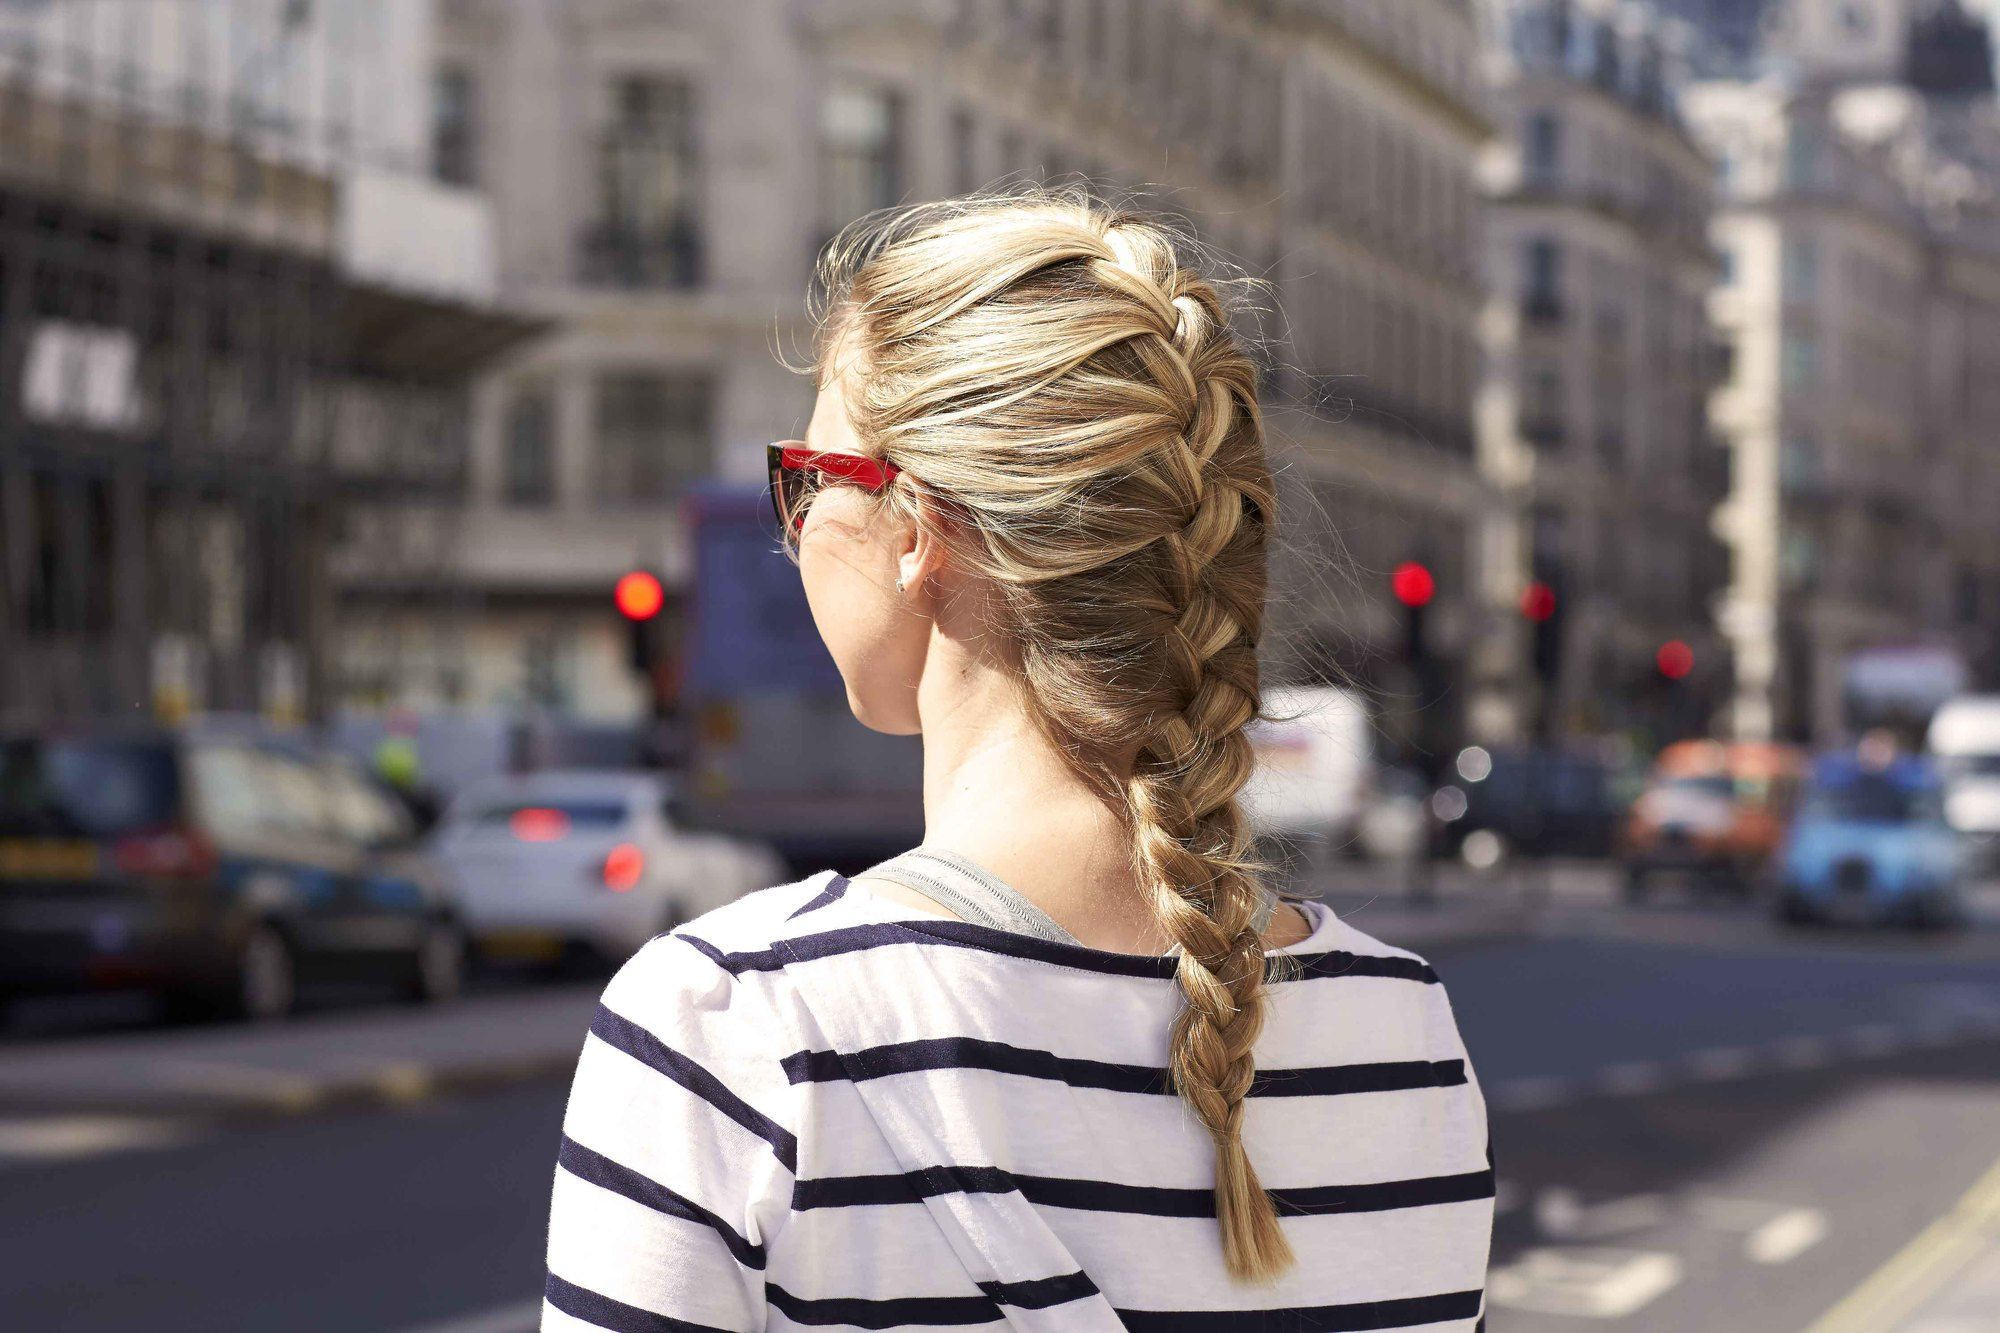 hair braiding with a French braid